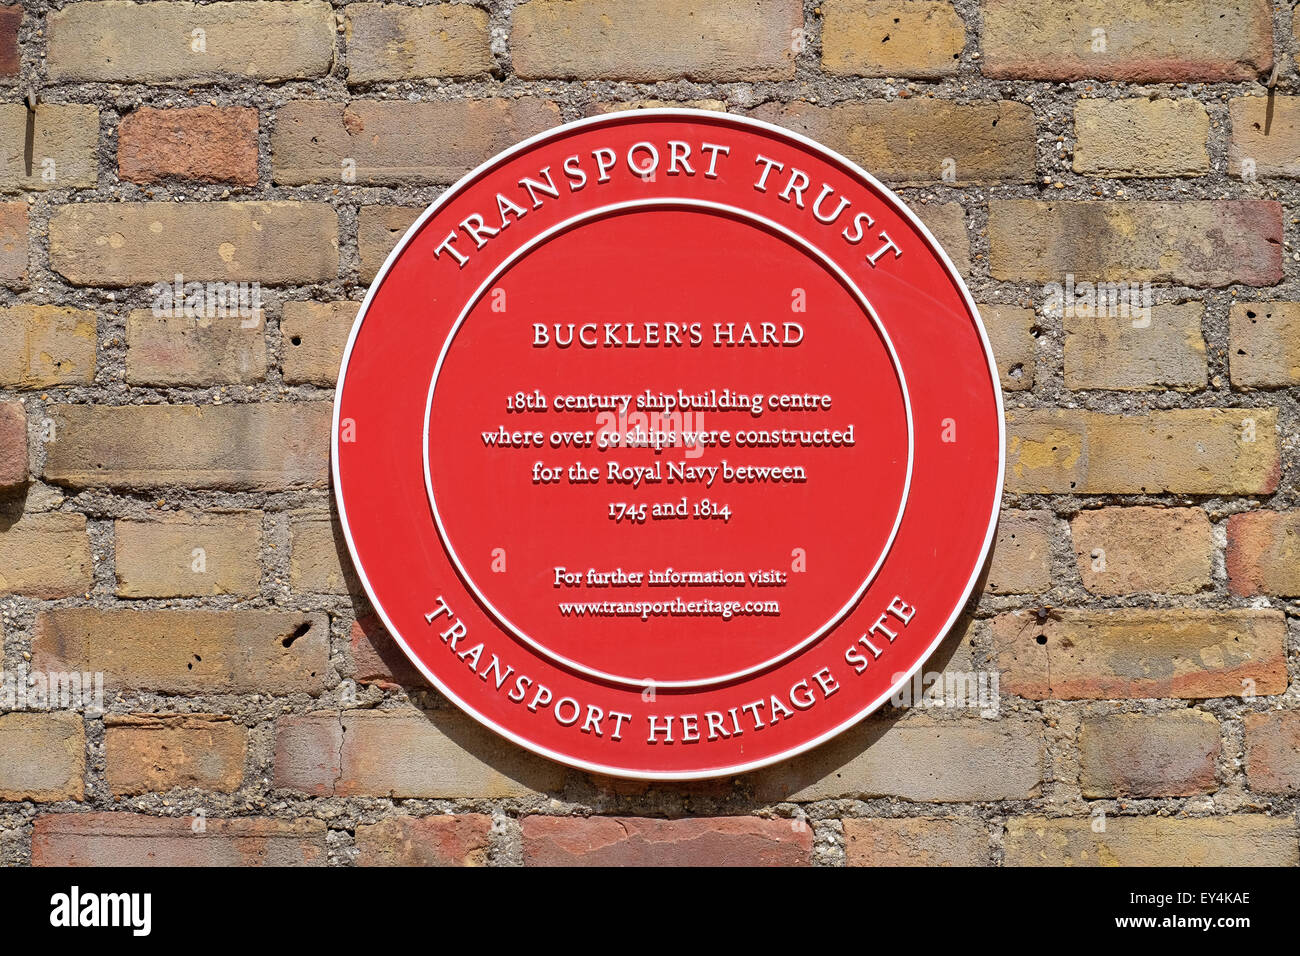 Transport Trust Plaque at Buckler's Hard historic ship building site on the Beaulieu River - Stock Image